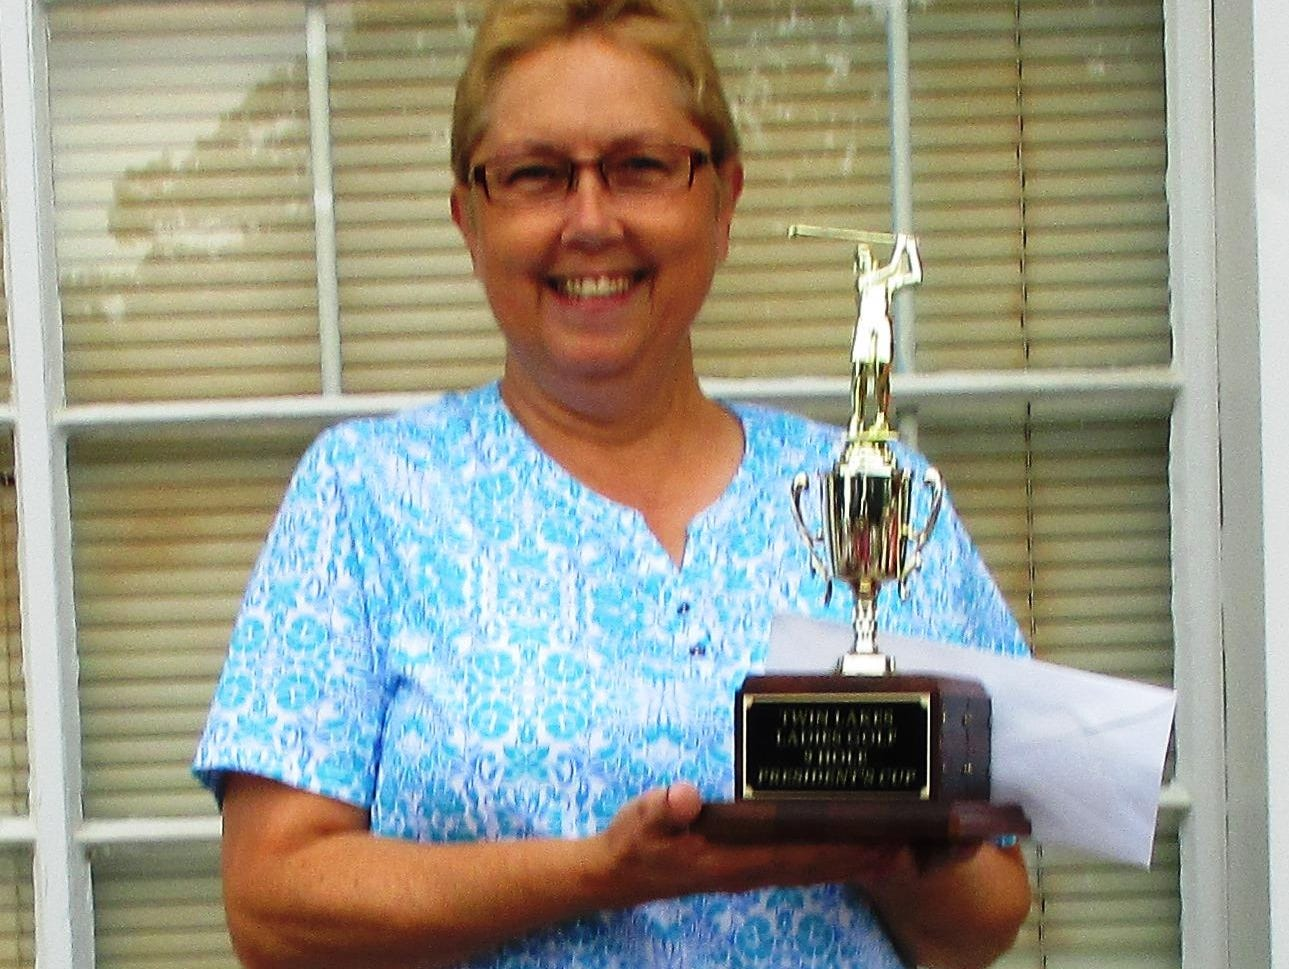 Peggy Fazio won the 2015 President's Cup after taking first place in the Twin Lakes Ladies Golf League match play event for nine-hole players, which ran through June. Not pictured is runner-up Karen Bushman. The ladies league has held the event for more than 20 years.